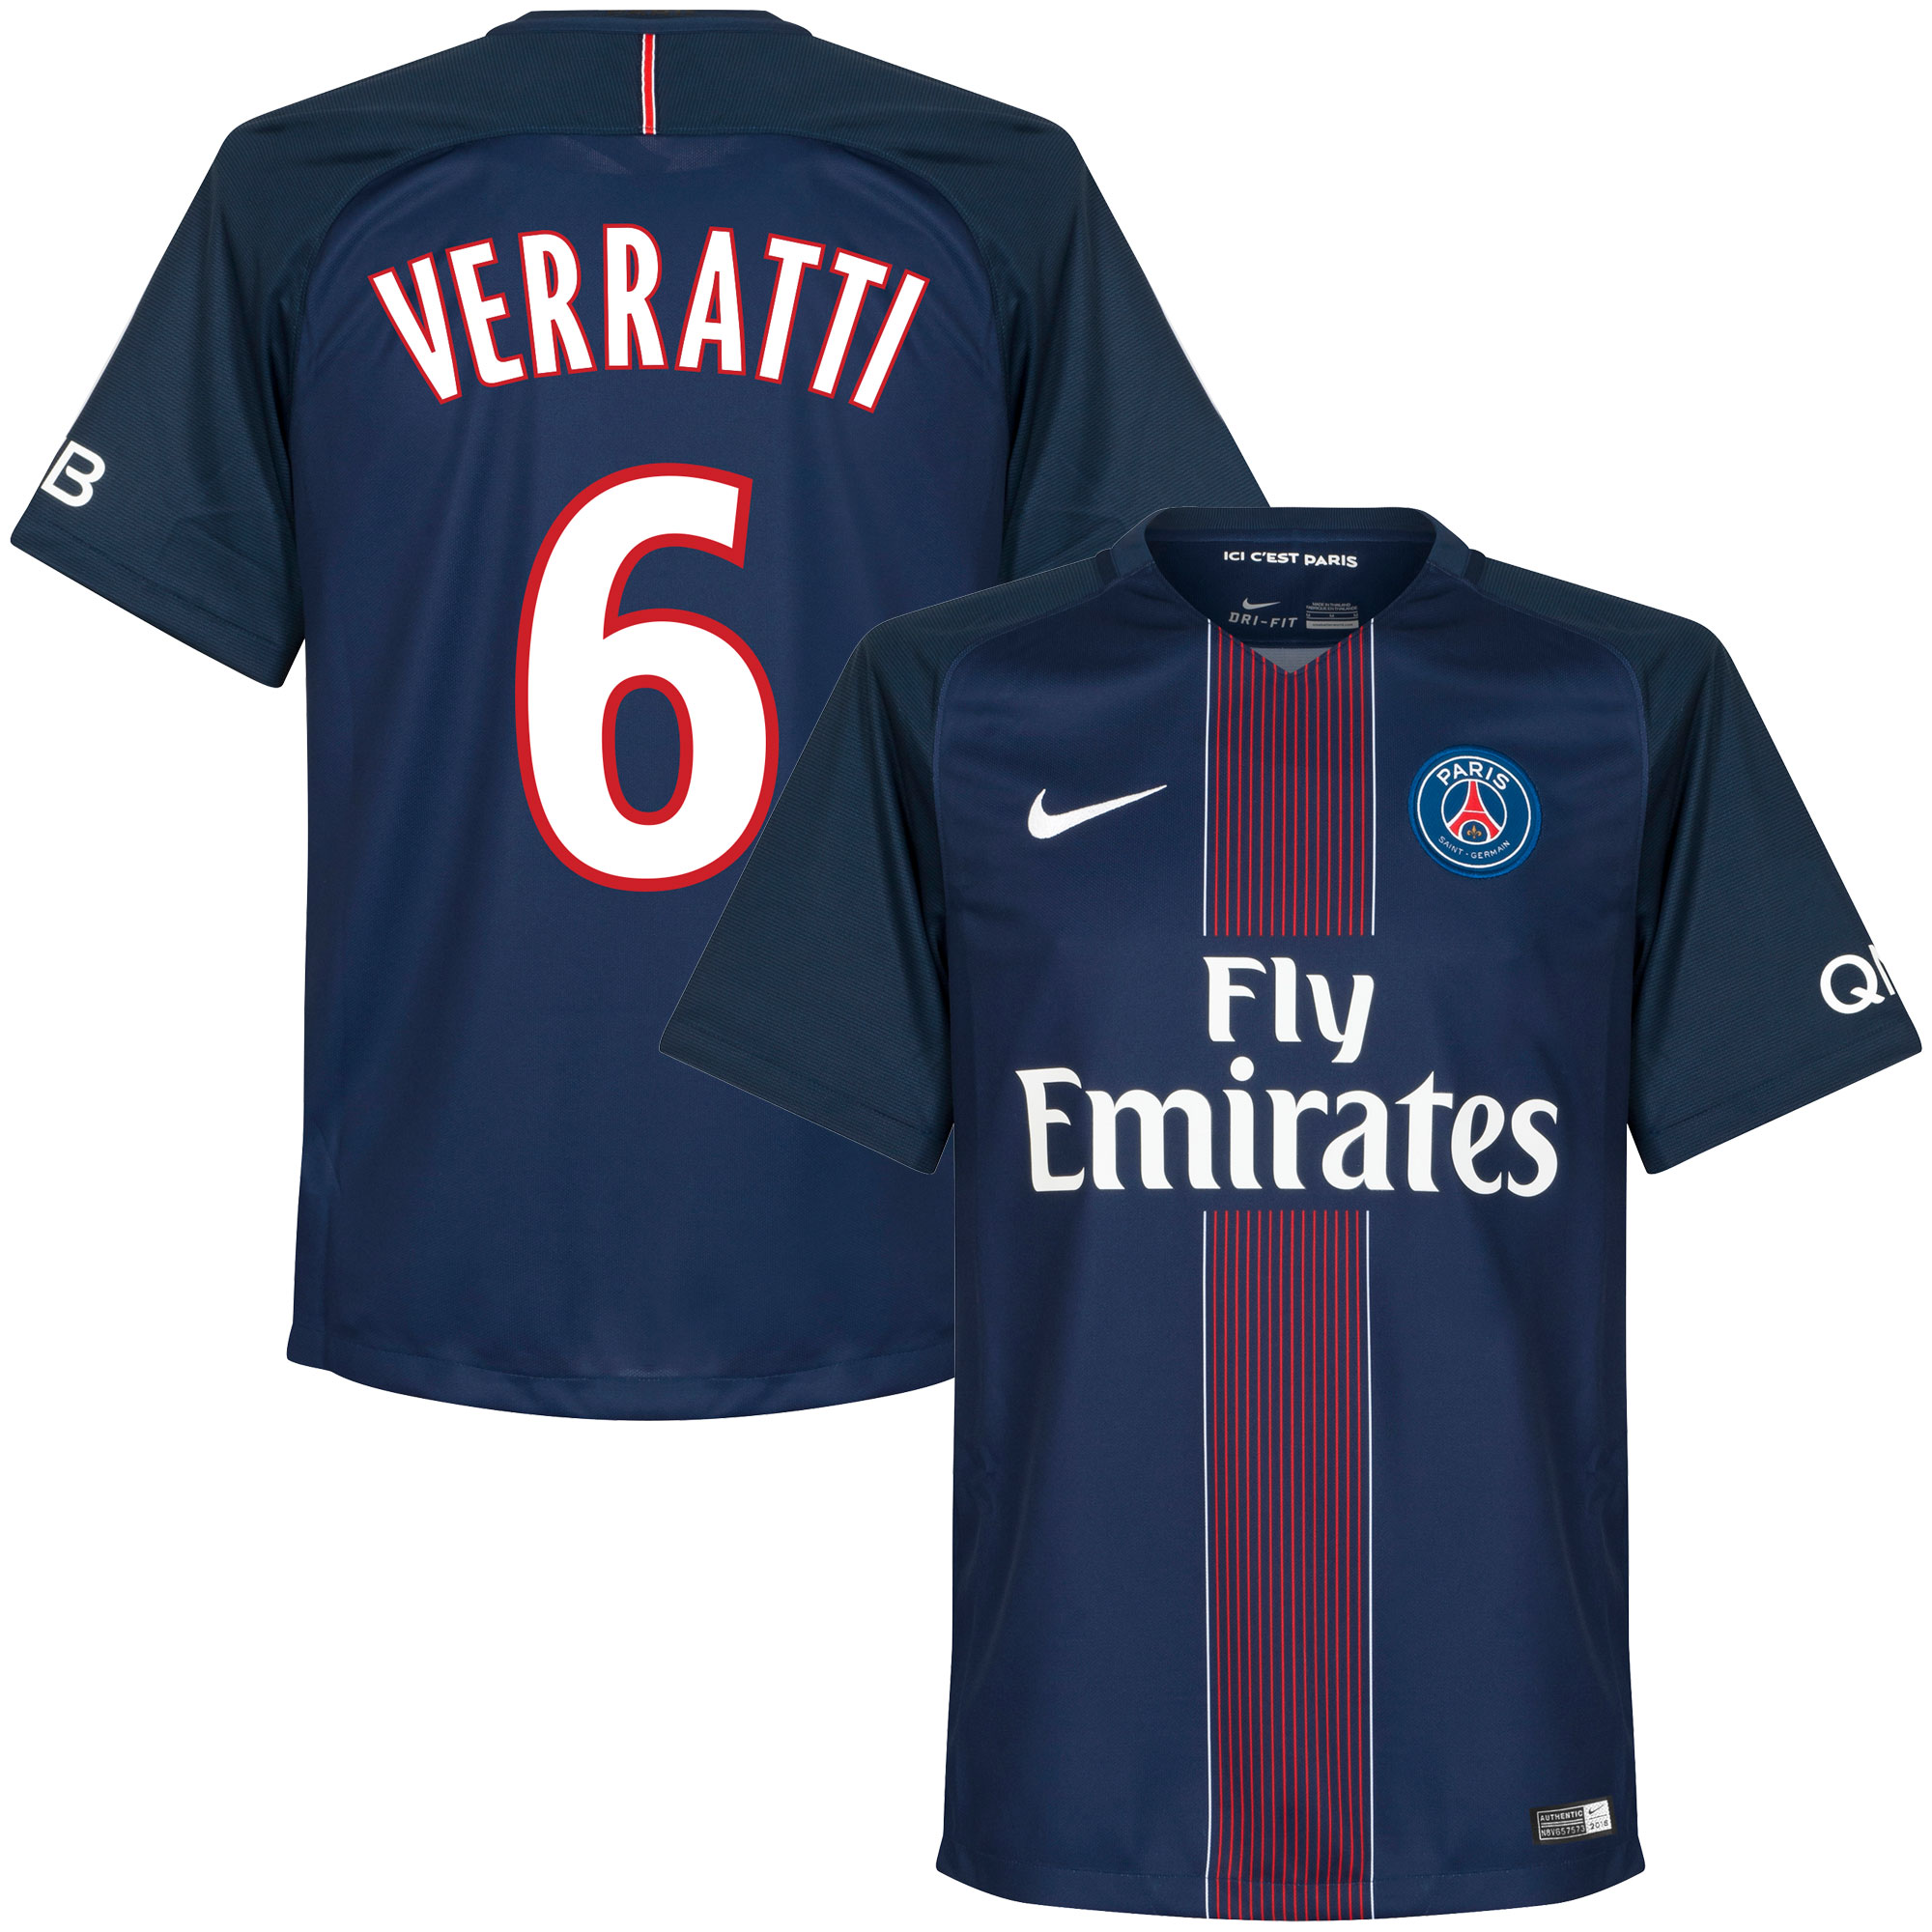 PSG Home Verratti Jersey 2016 / 2017 (Fan Style Printing) - XL